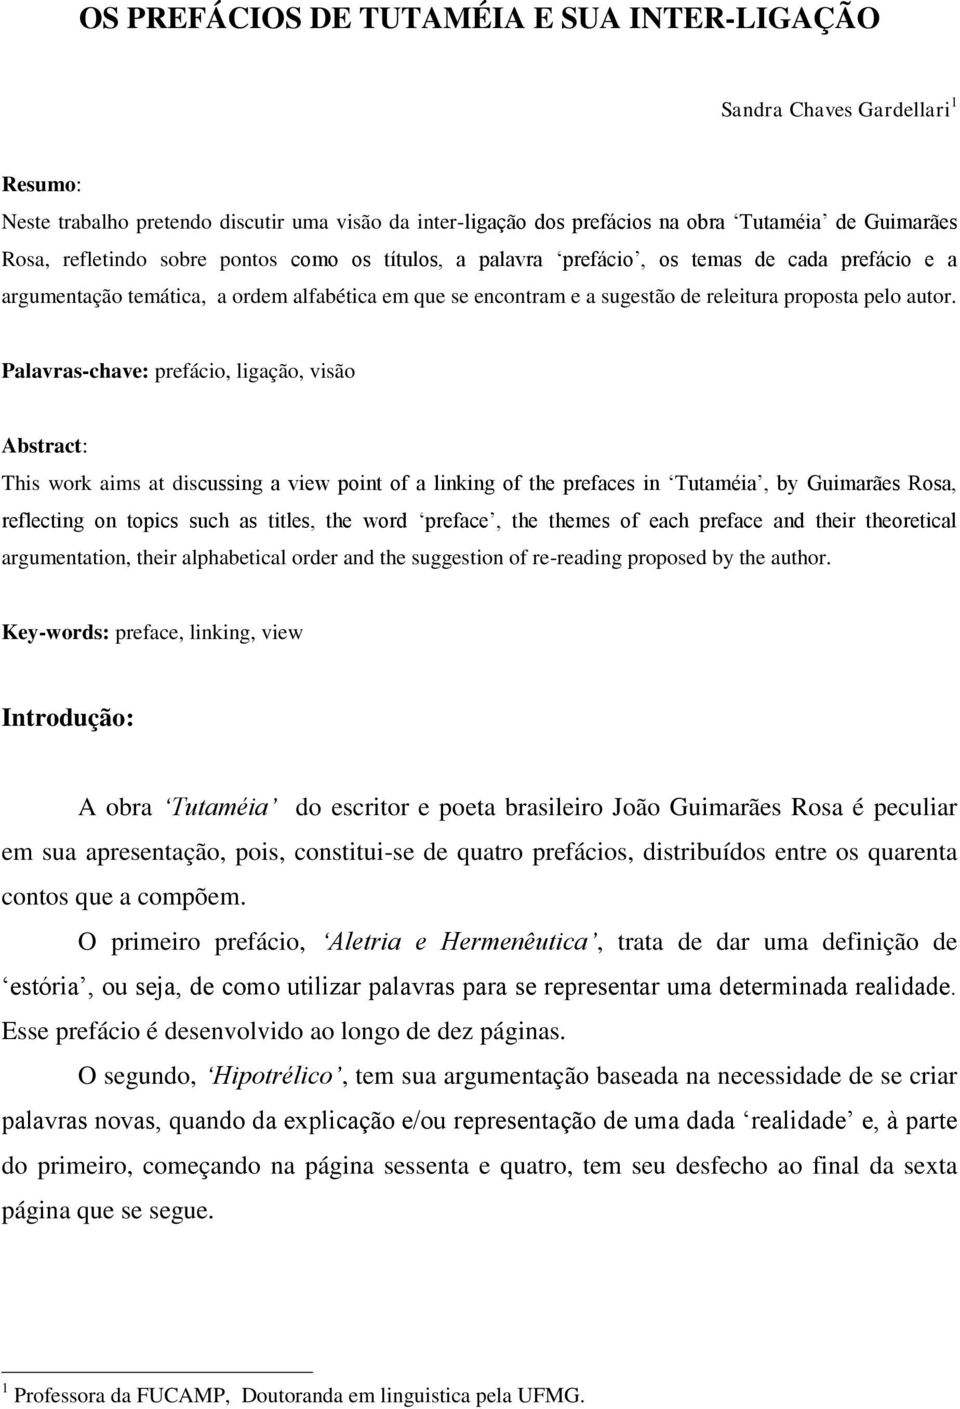 Palavras-chave: prefácio, ligação, visão Abstract: This work aims at discussing a view point of a linking of the prefaces in Tutaméia, by Guimarães Rosa, reflecting on topics such as titles, the word